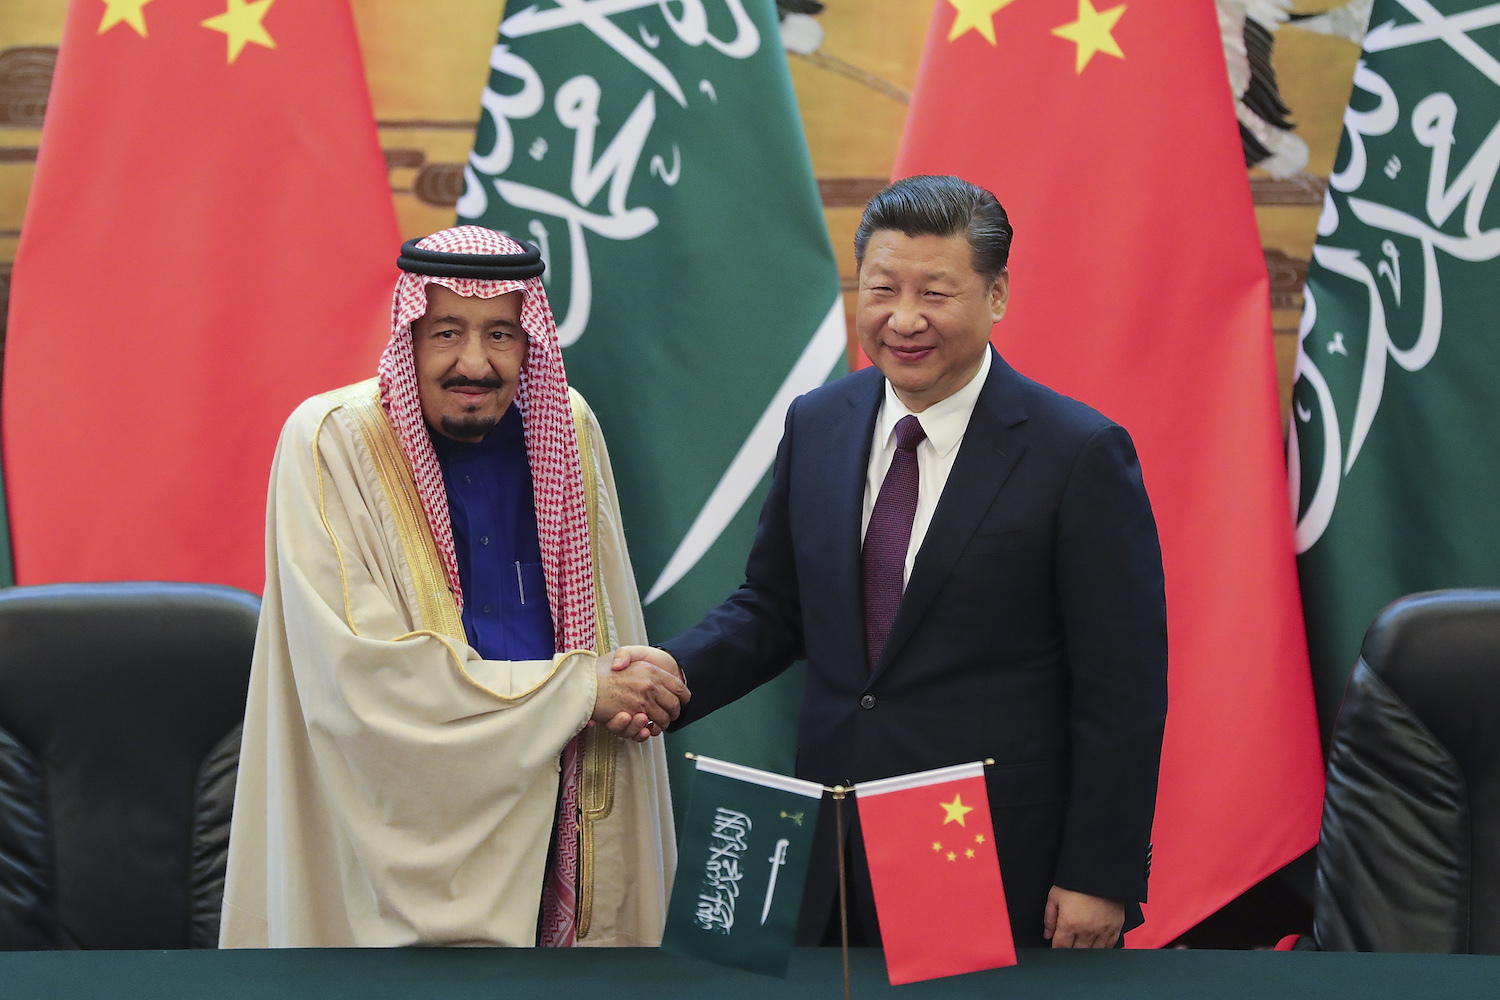 China is eyeballing a major strategic investment in Saudi Arabia's oil